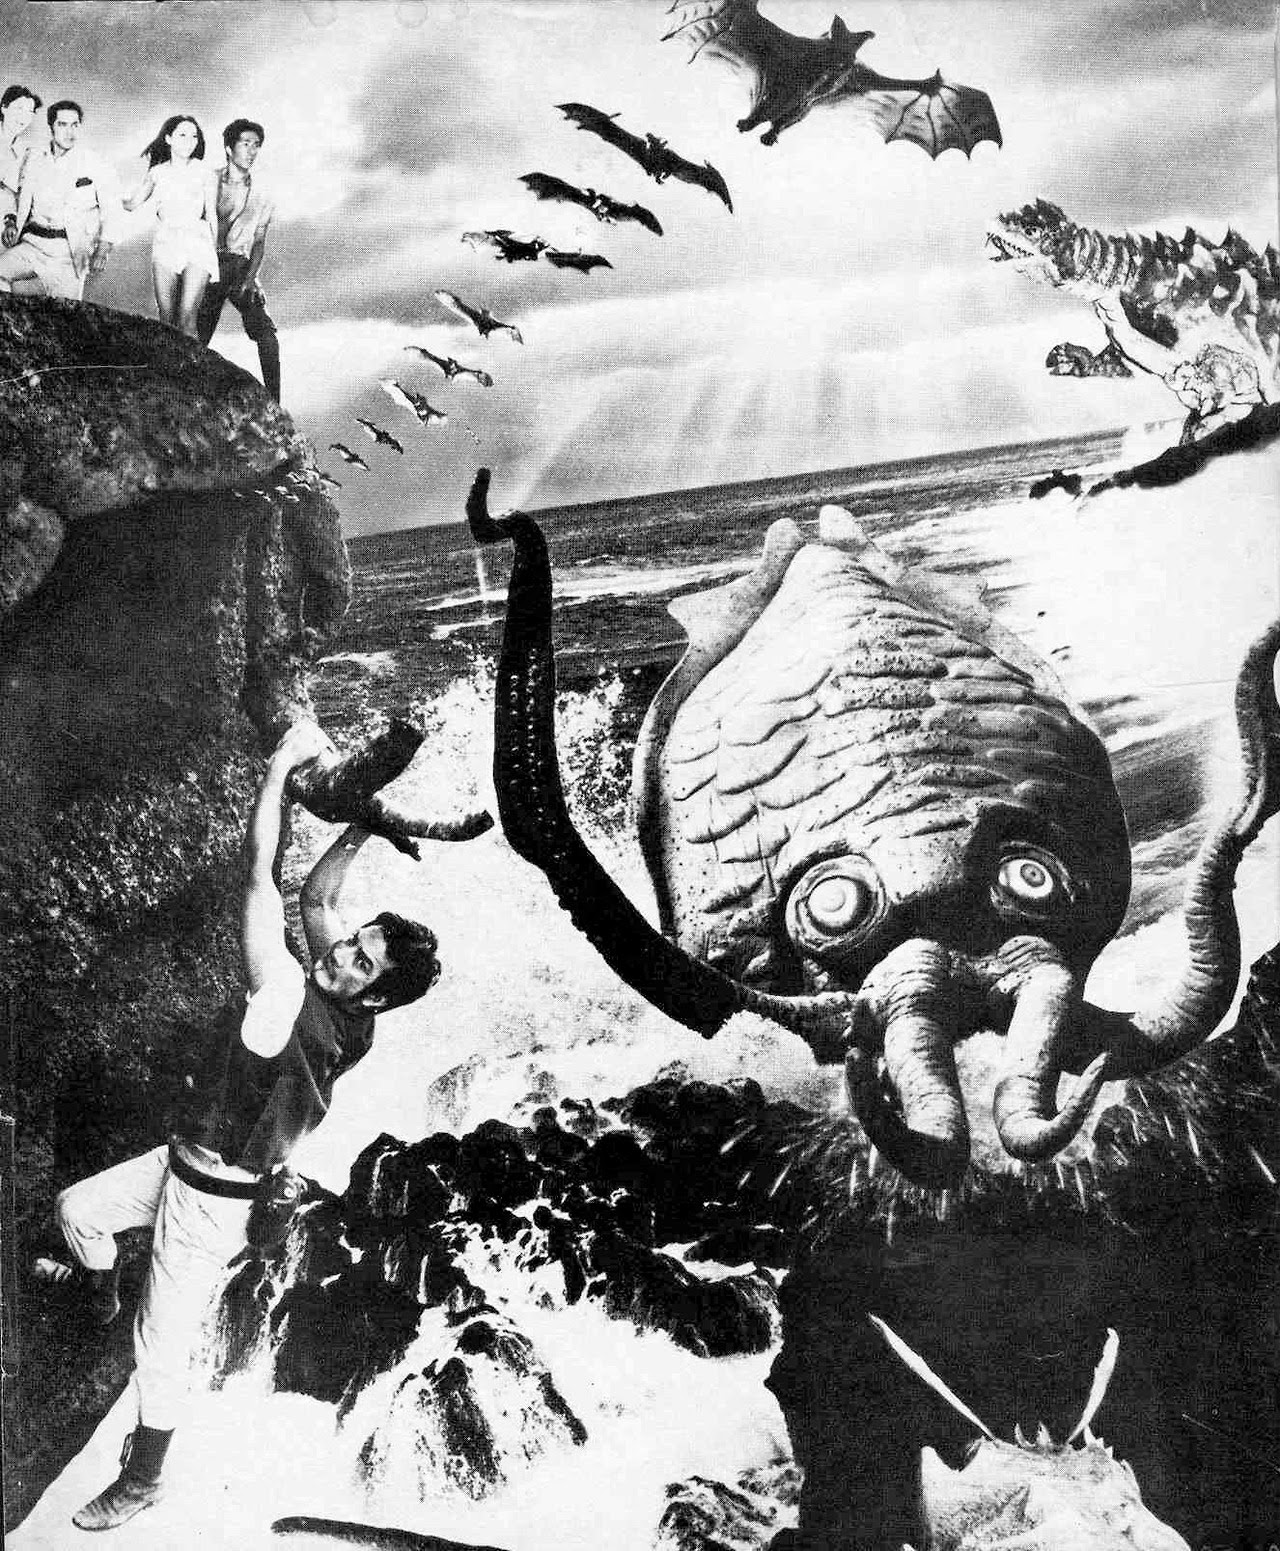 space amoeba 1970 gif blueiskewl 1970 Chrysler 300 Convertible lit gezora ganimes and kamoebas decisive battle giant monsters of the south seas is a 1970 japanese science fiction kaiju